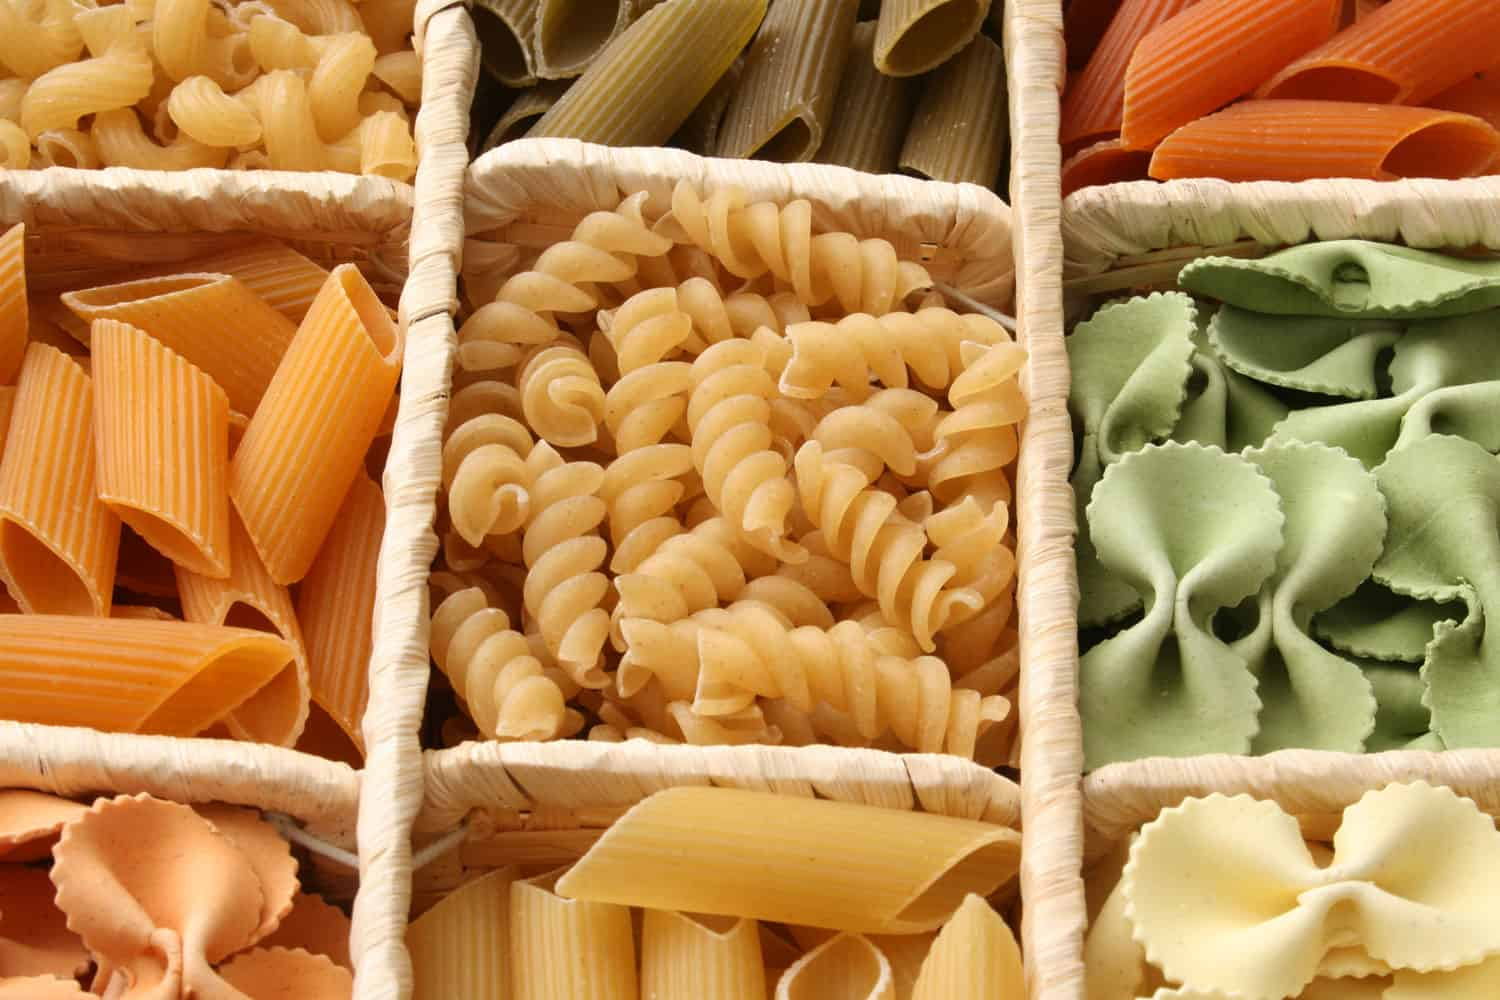 Variety of dried pasta inside container. Shallow depth of field